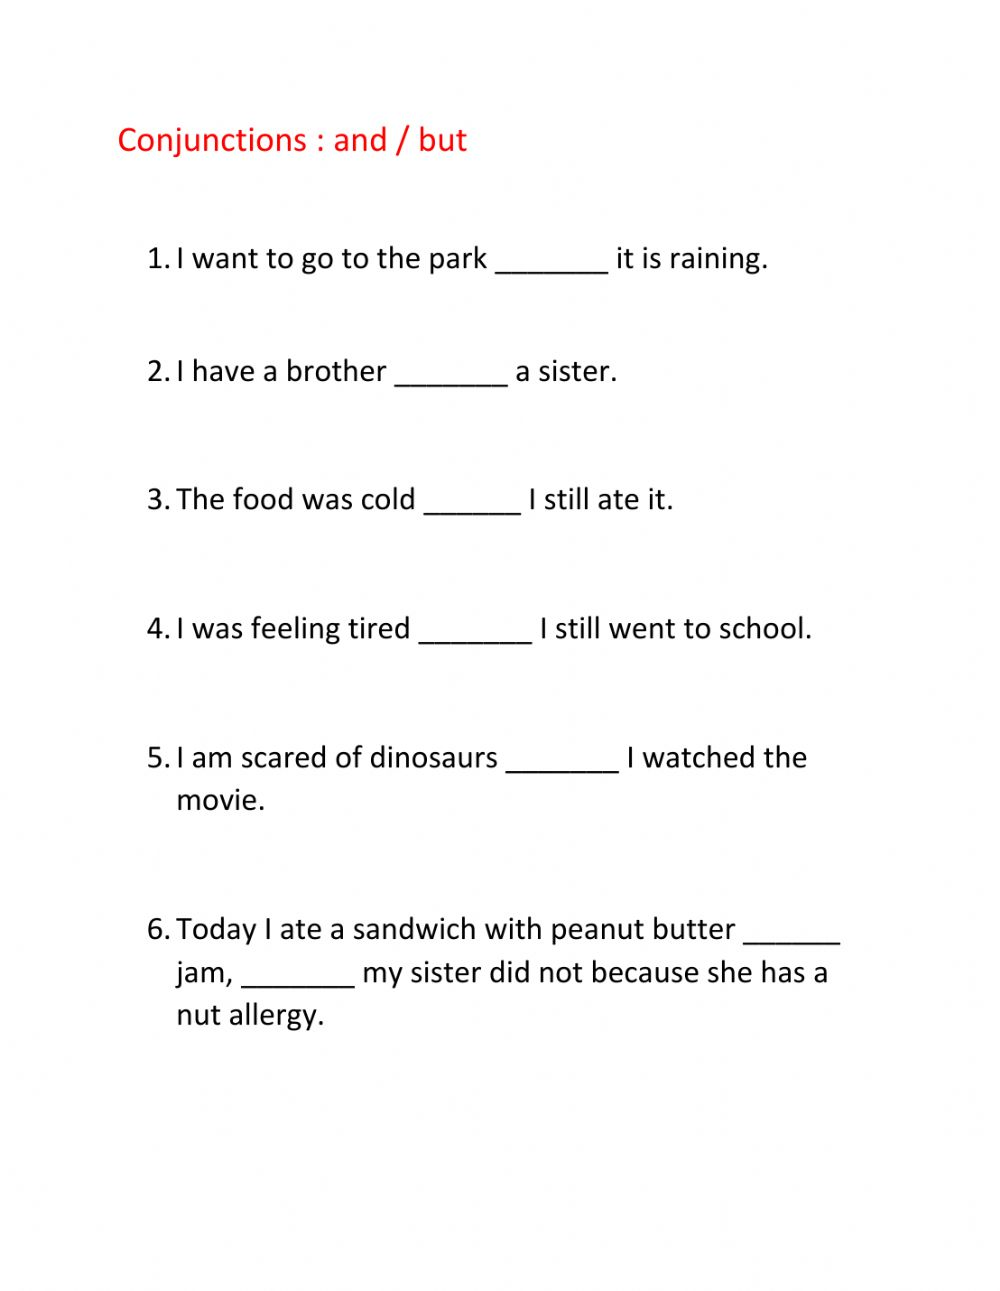 medium resolution of Conjunctions and but interactive worksheet